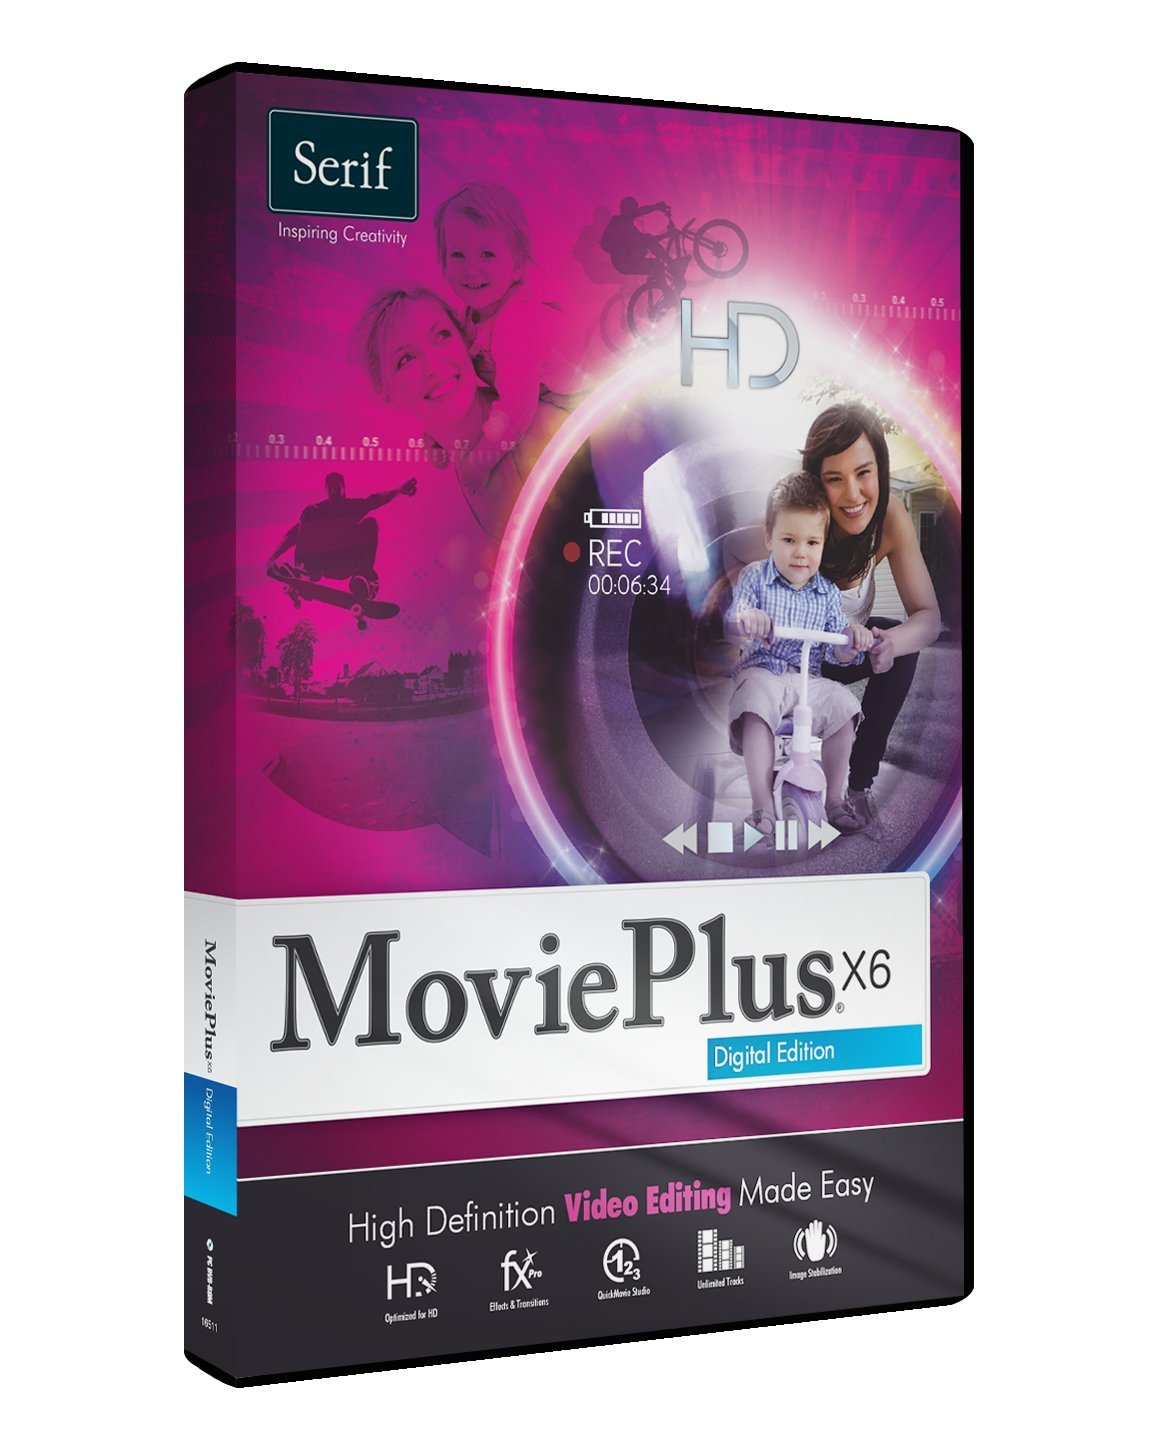 movieplus x6 user guide